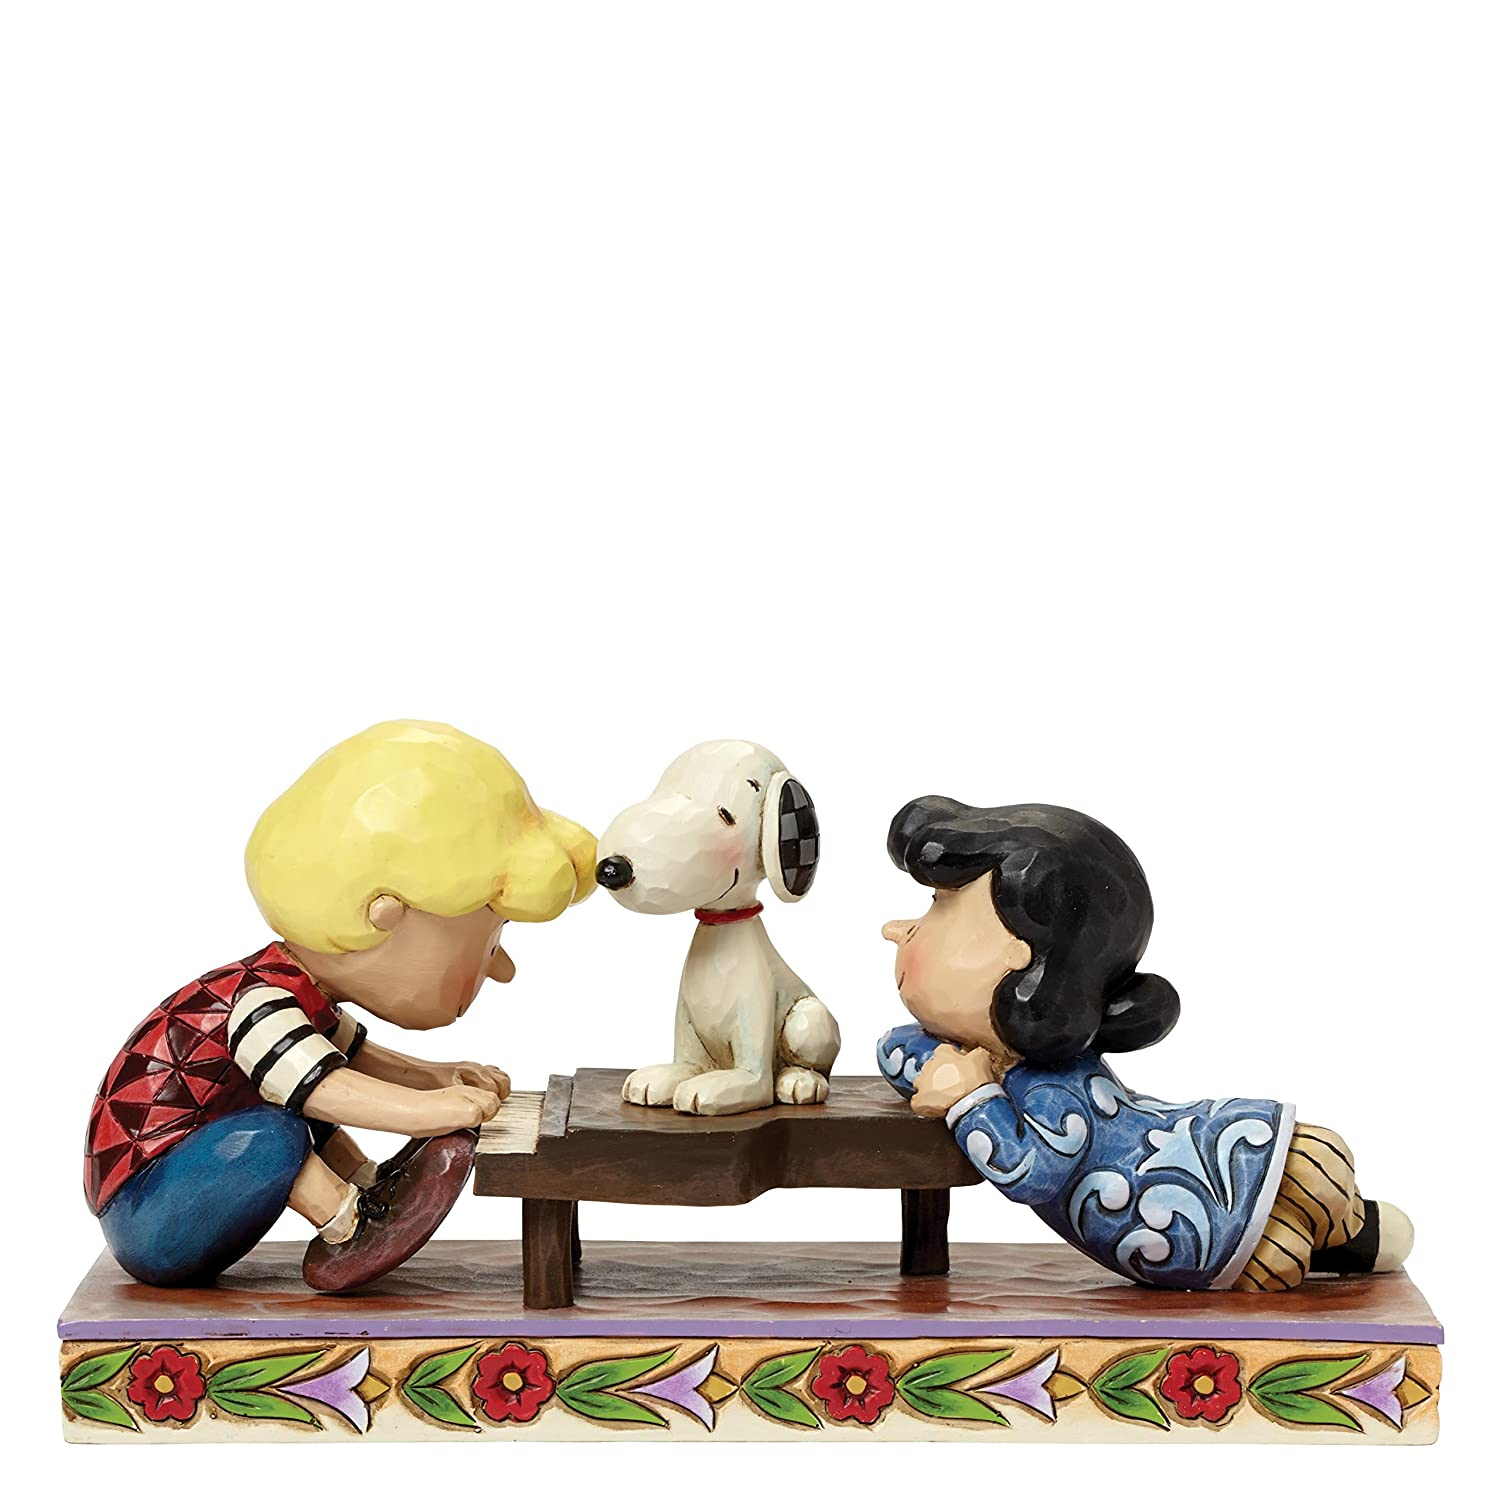 Jim Shore for Enesco Peanuts Schroeder with Lucy & Snoopy Figurine, 4 4 Enesco Gift 4042385